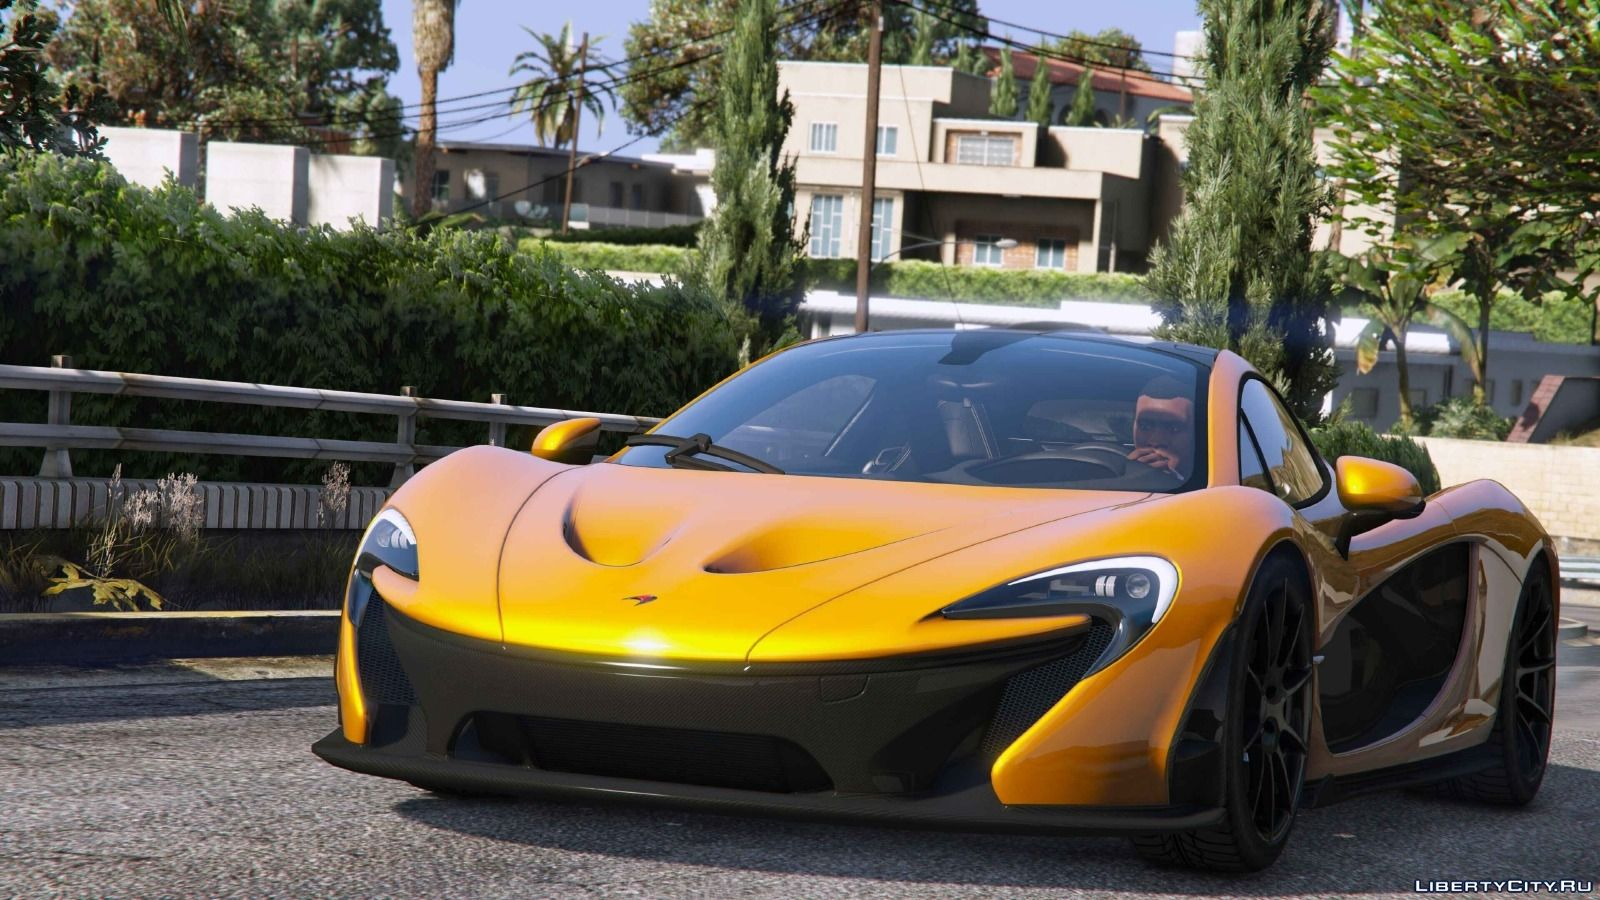 https://libertycity.net/uploads/download/gta5_mclaren/fulls/6d2pq82gafati3cs6ta871d9f3/14428341232913_a81c1d-qqez20150825213722.jpg